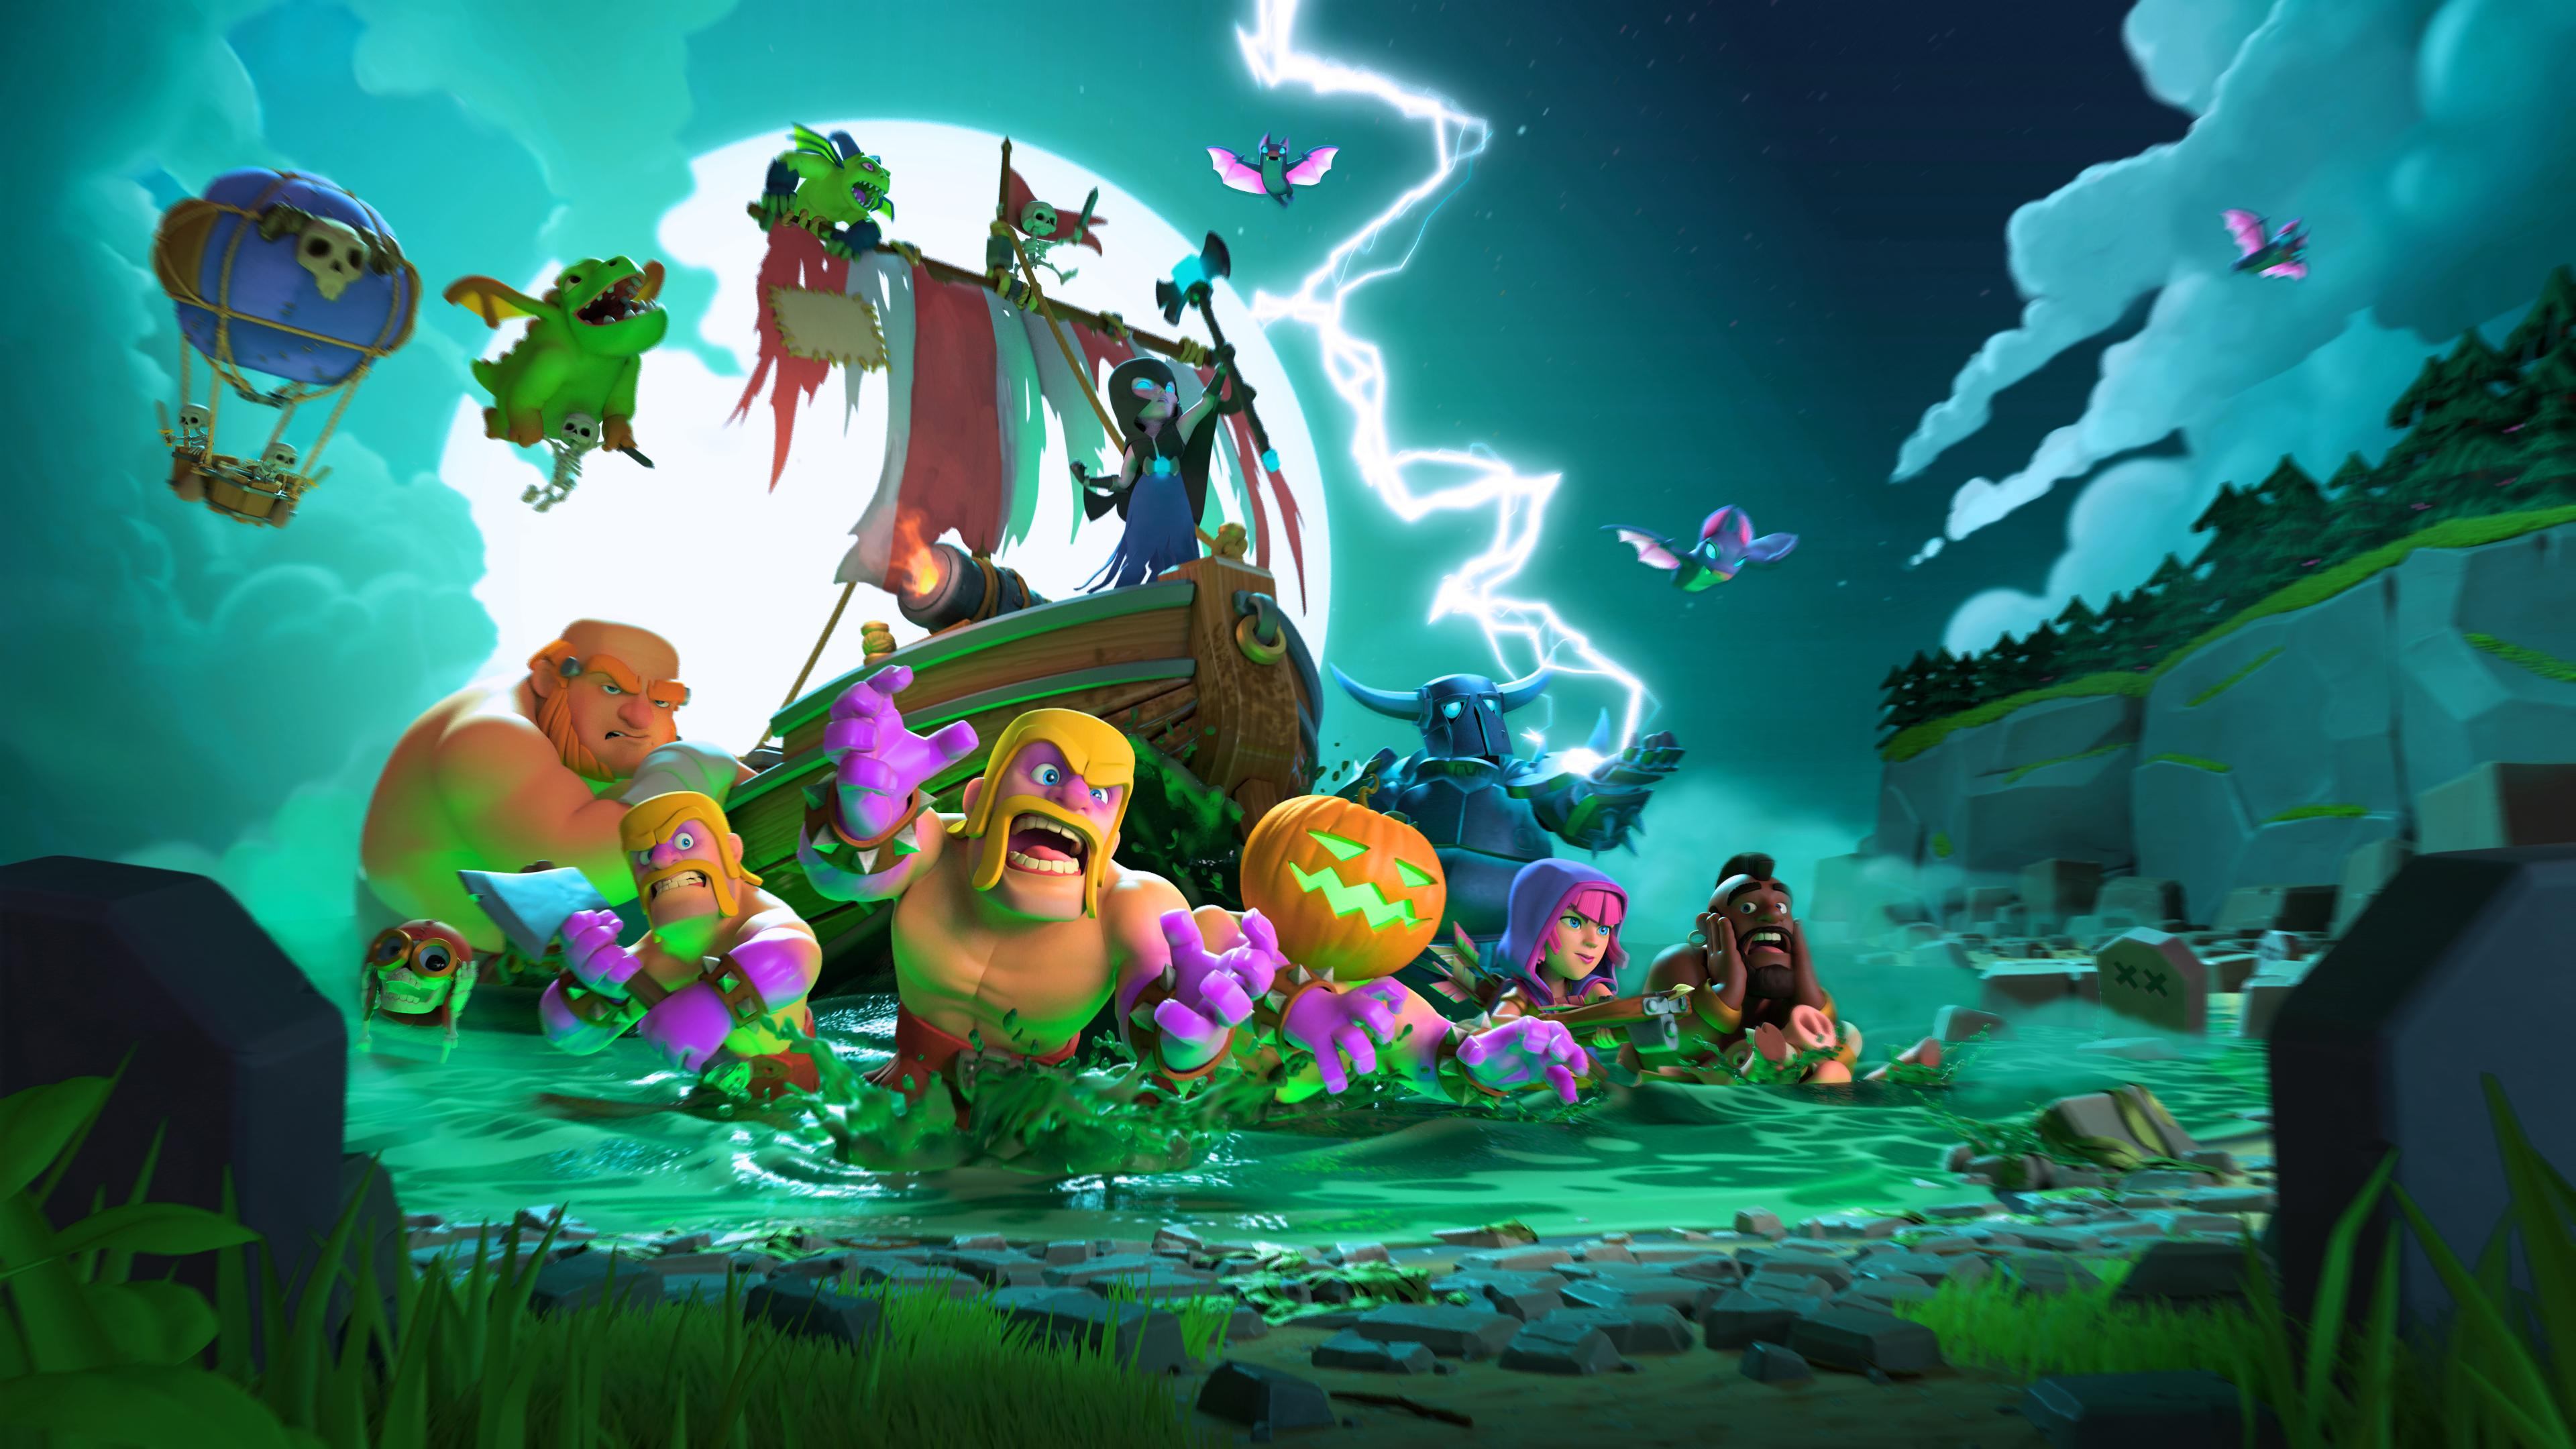 clash of clans halloween 4k hd games 4k wallpapers images